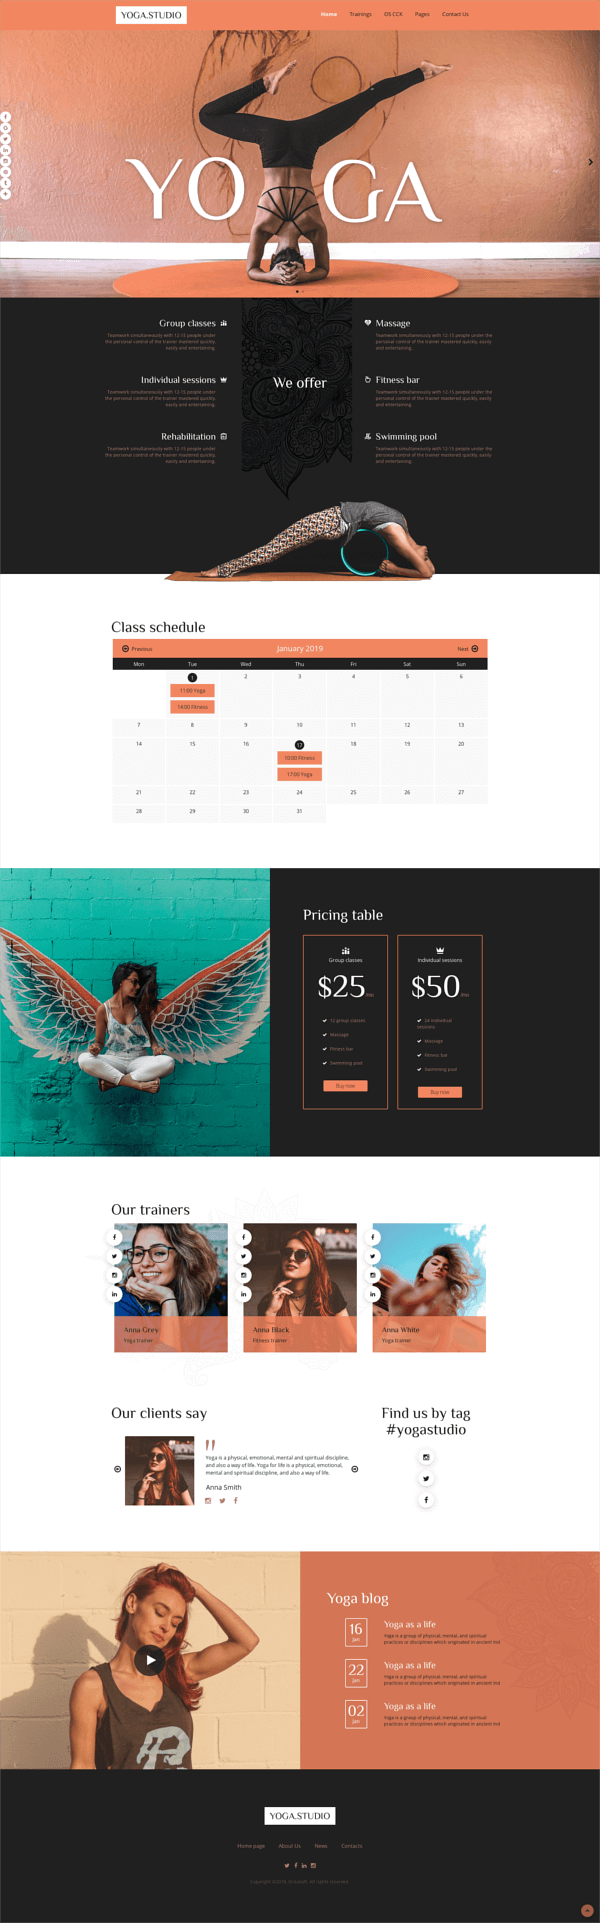 Yoga Studio - Joomla spa template, full screen